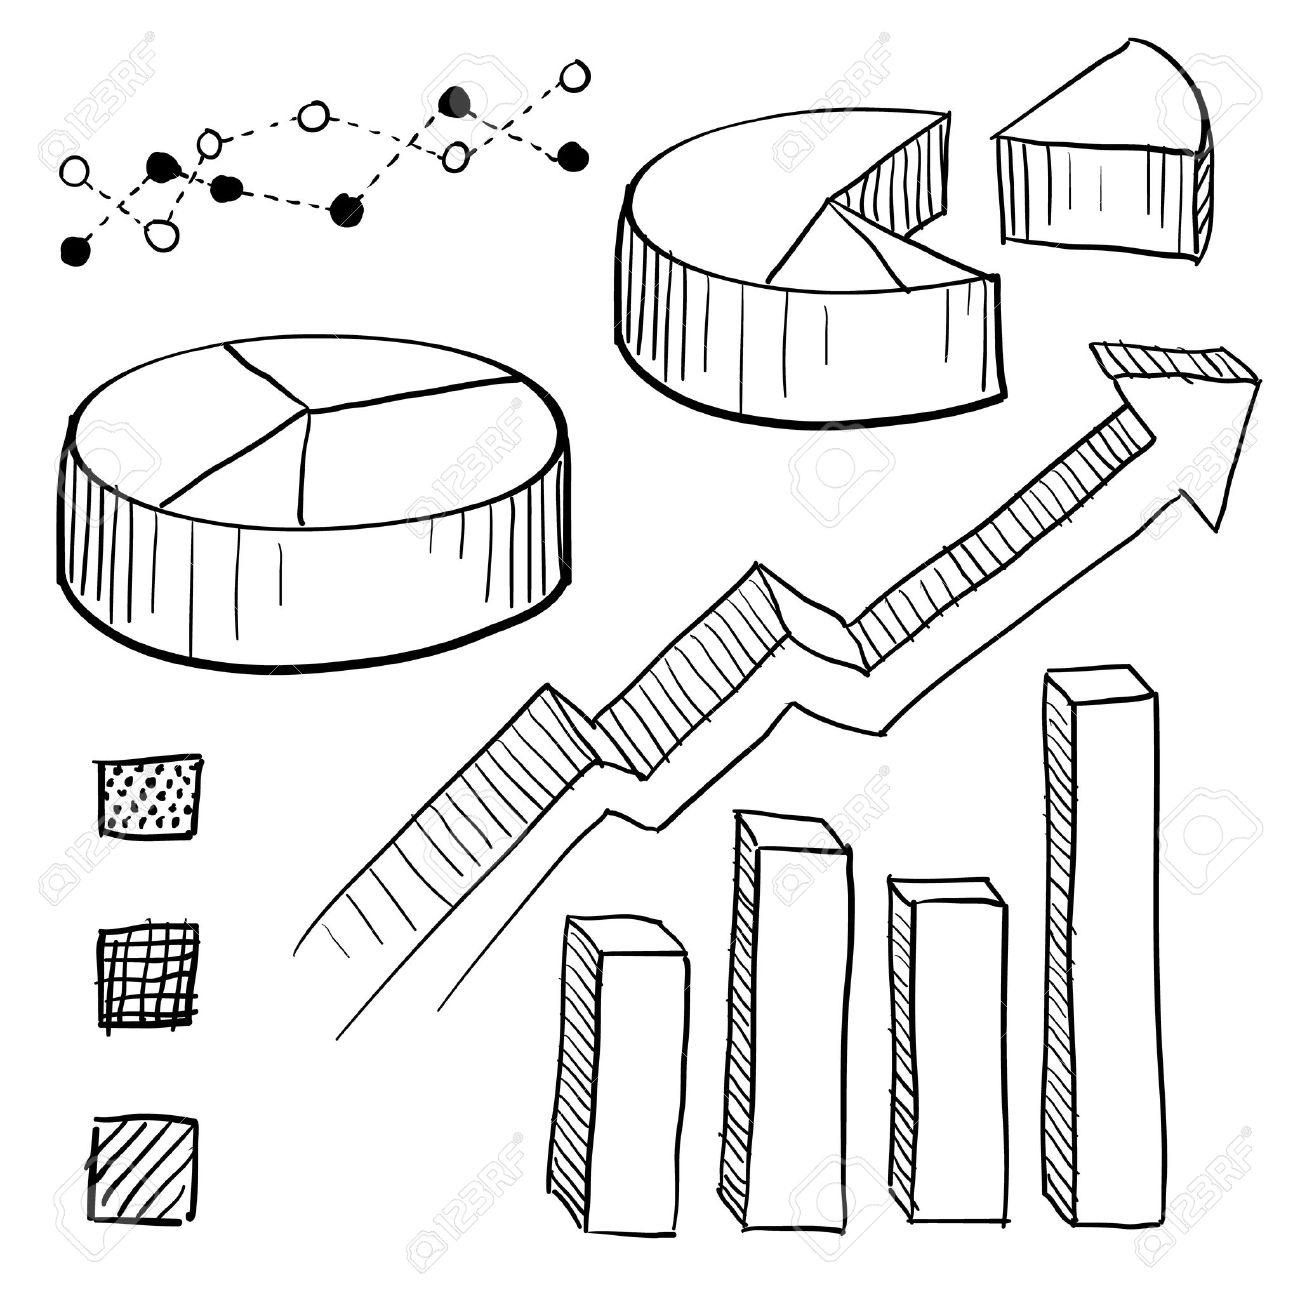 1300x1300 Doodle Style Charts, Graphs, And Plotting Components Illustration